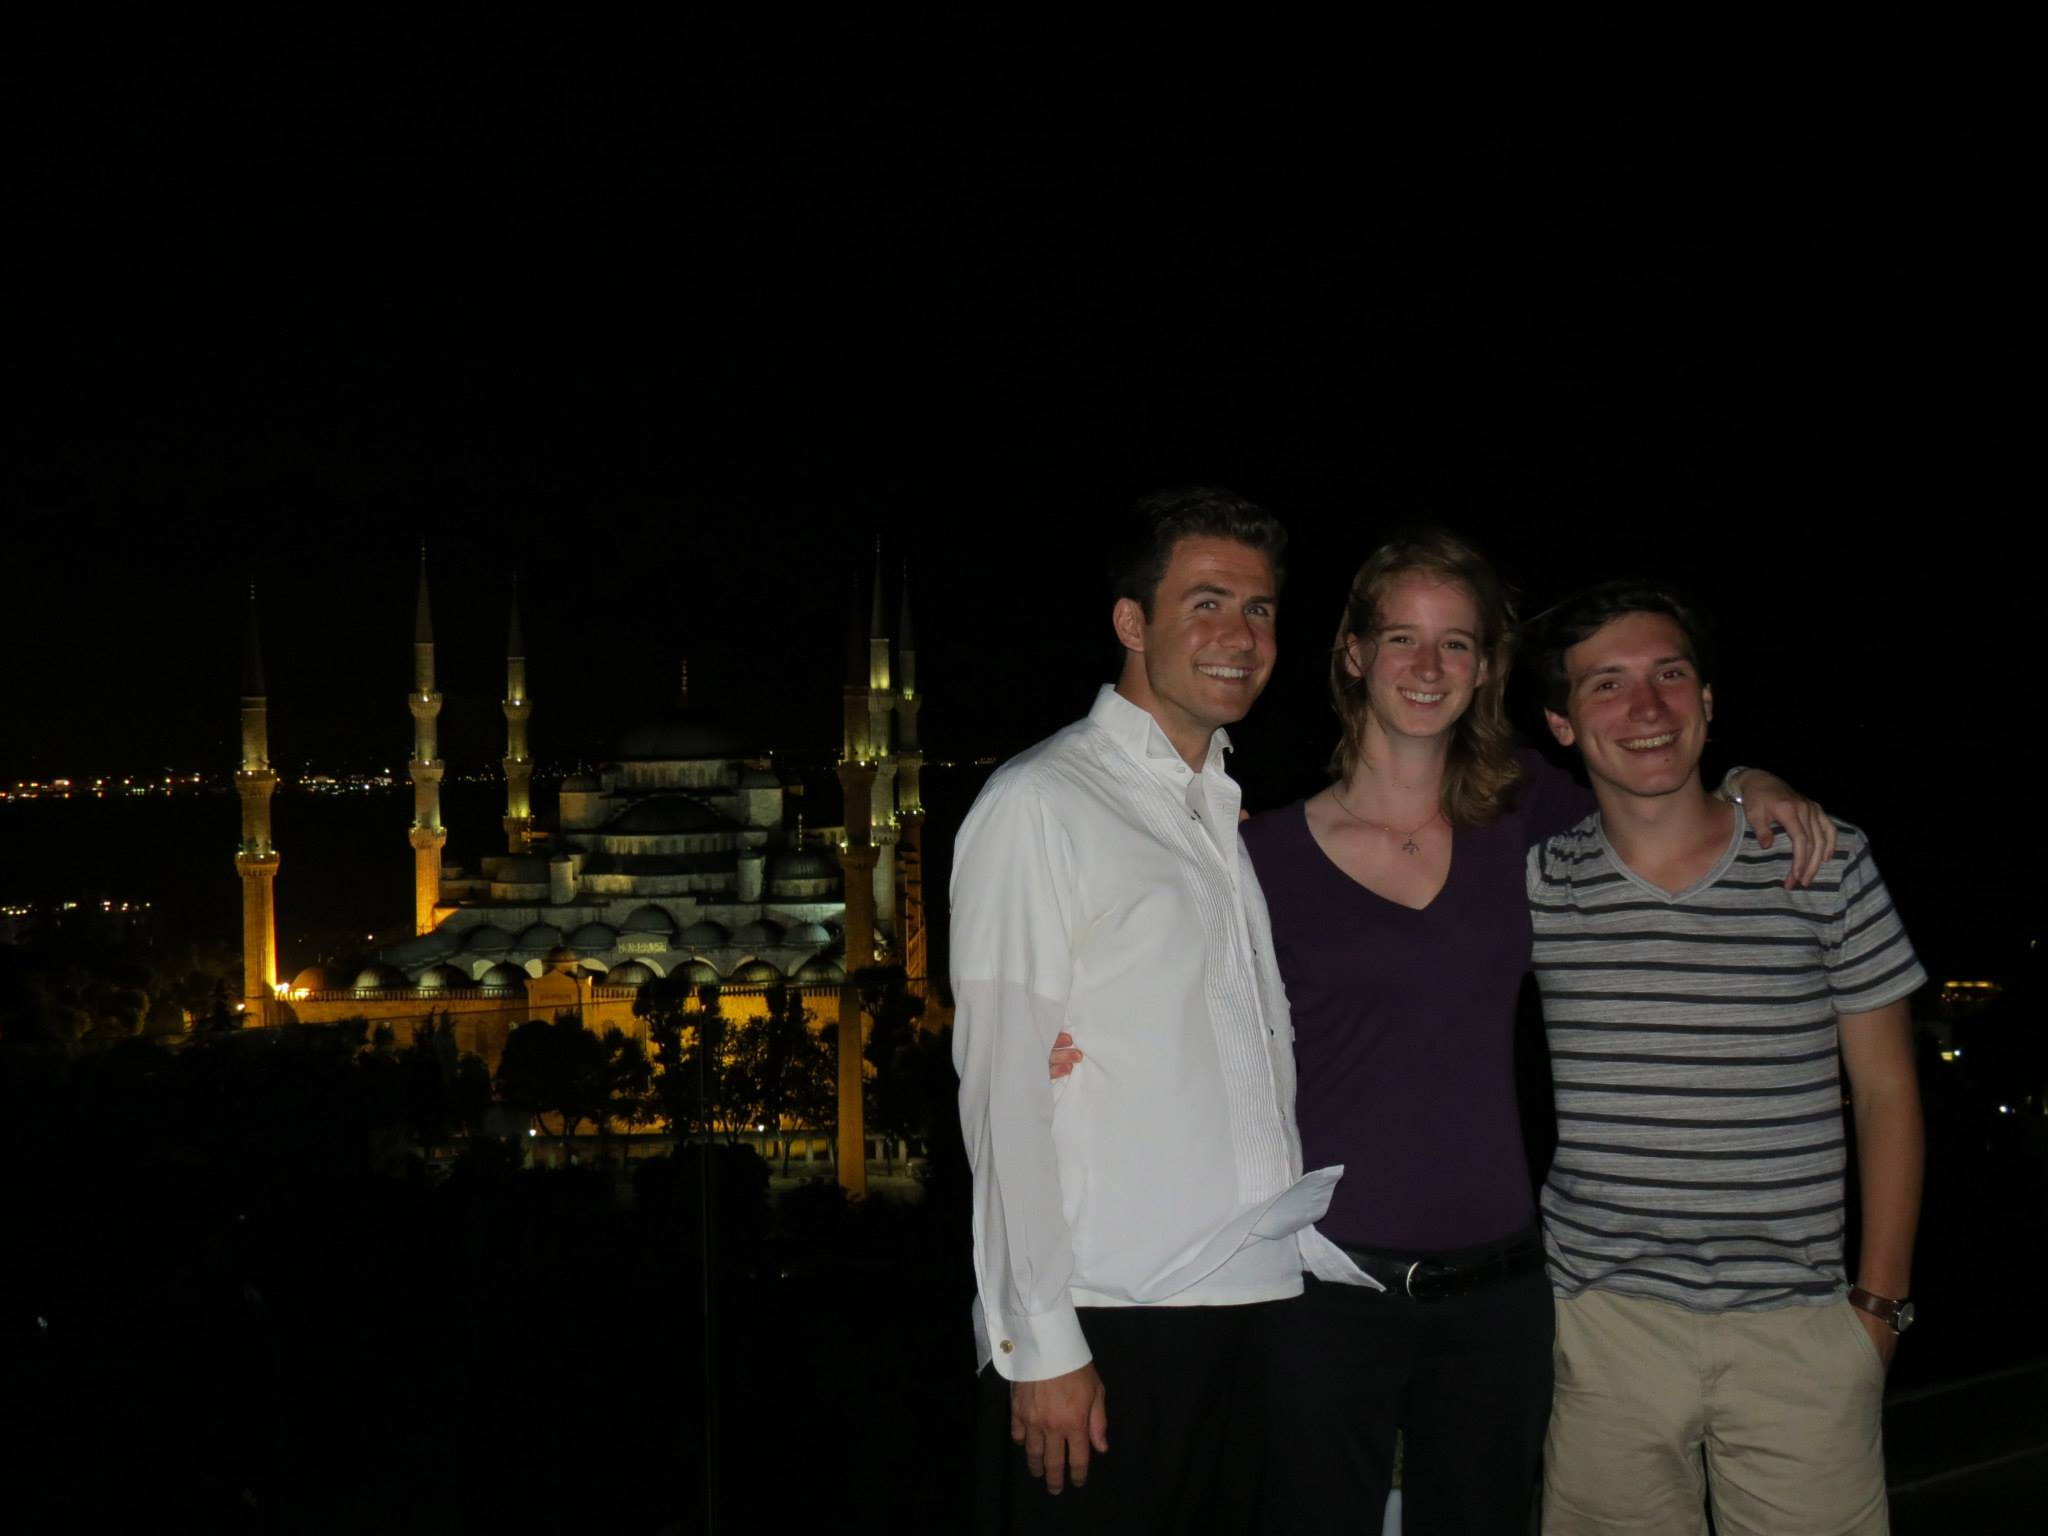 Dinner overlooking the Blue Mosque, Turkey 2013